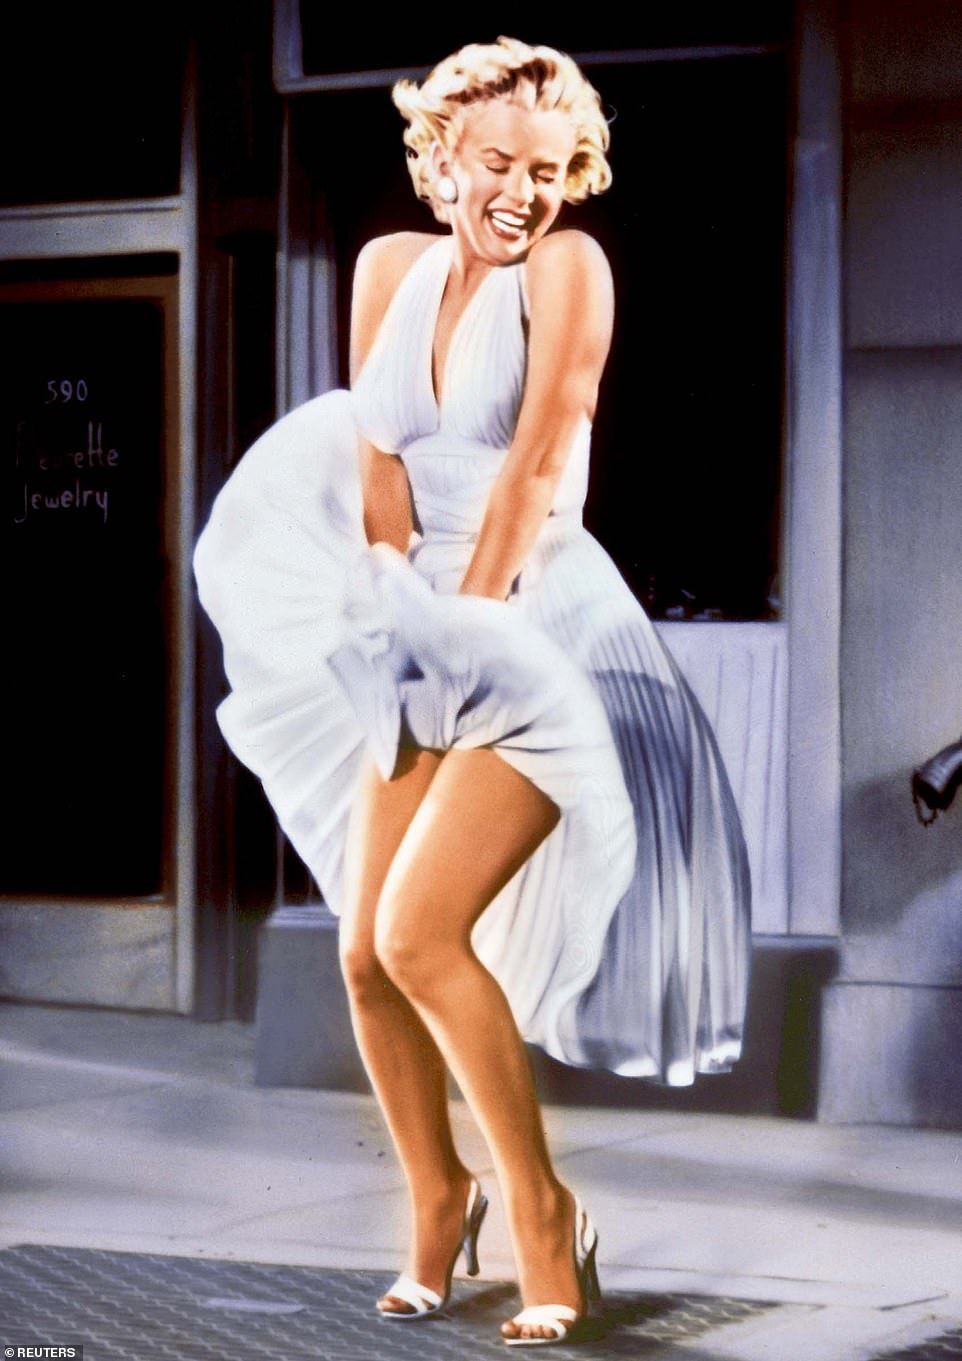 Iconic: Marilyn's famous moment occurred during the filming of The Seven Year Itch in 1954. The starlet's white dress flew off as she crossed a subway gate in Manhattan